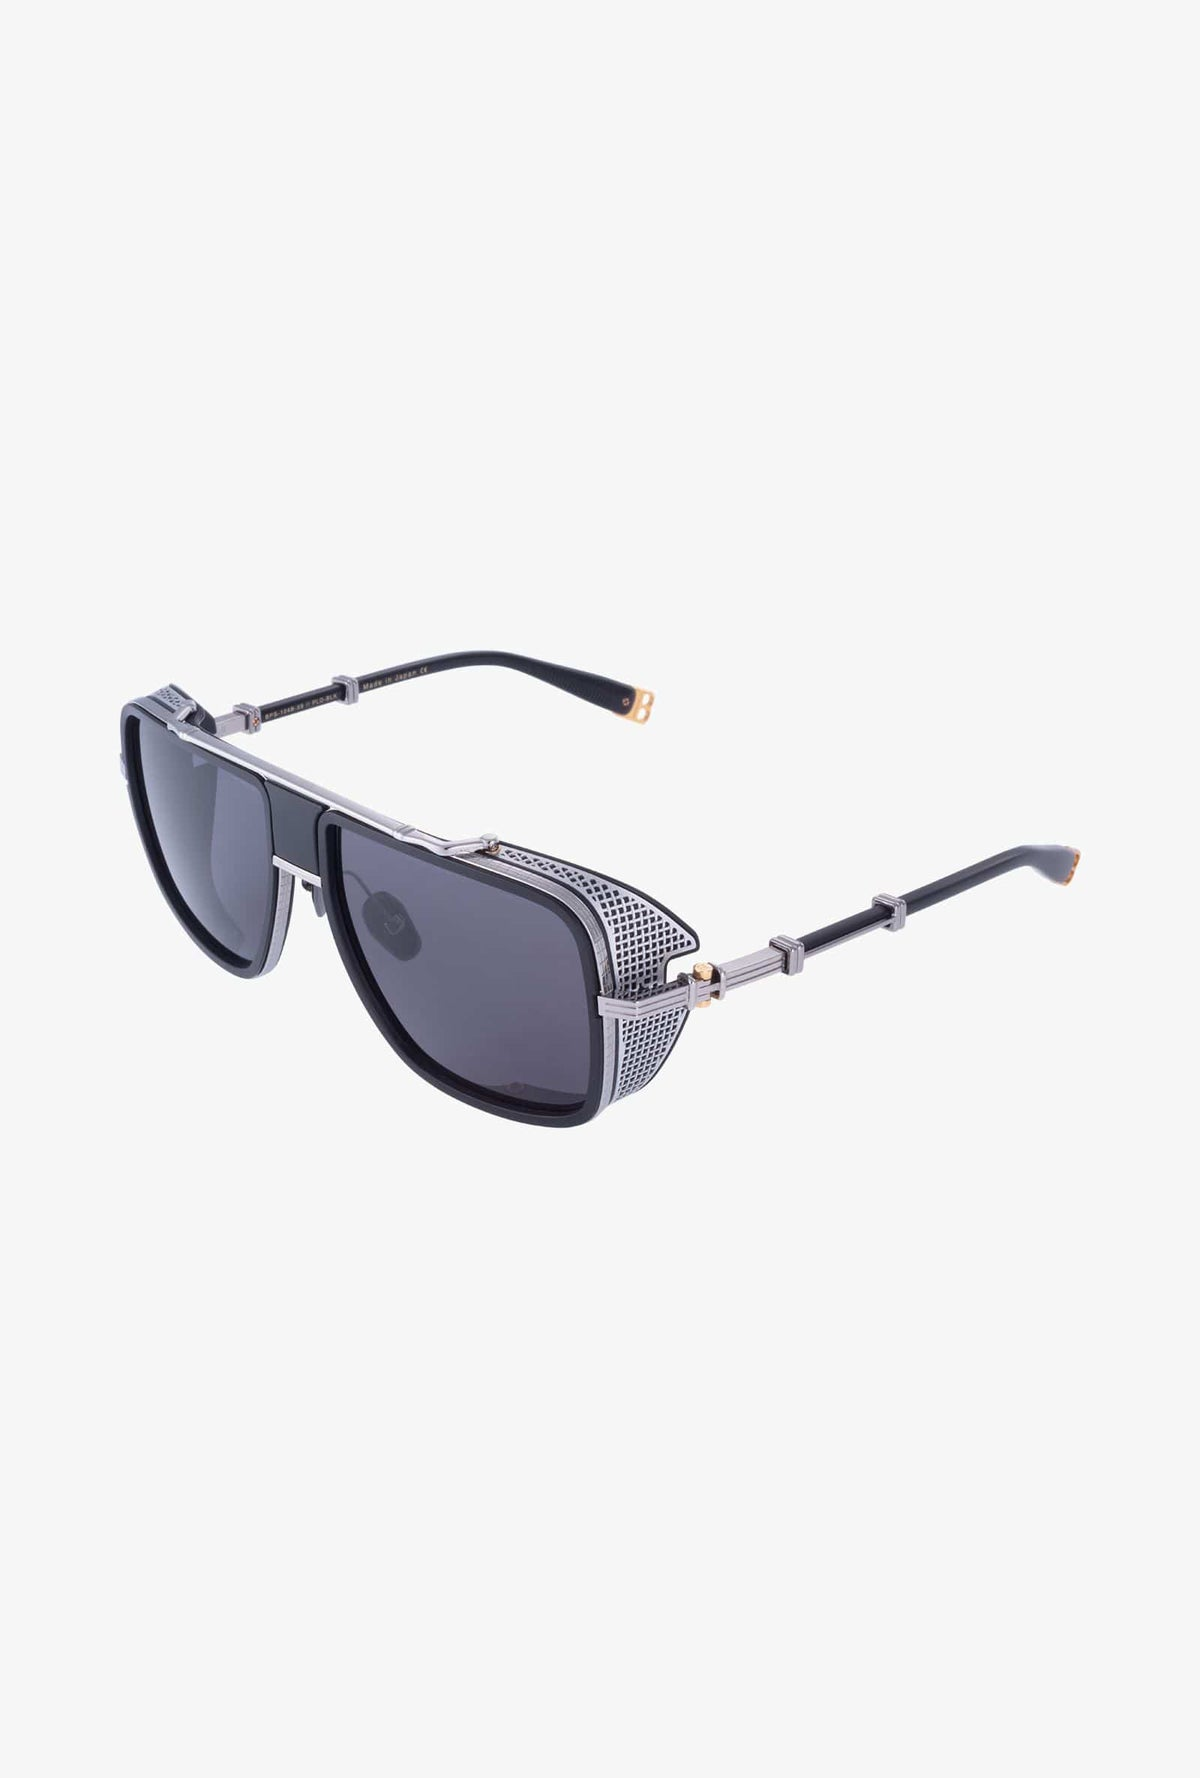 Balmain Unisex Black And Silver-Tone Metal O.R. Sunglasses